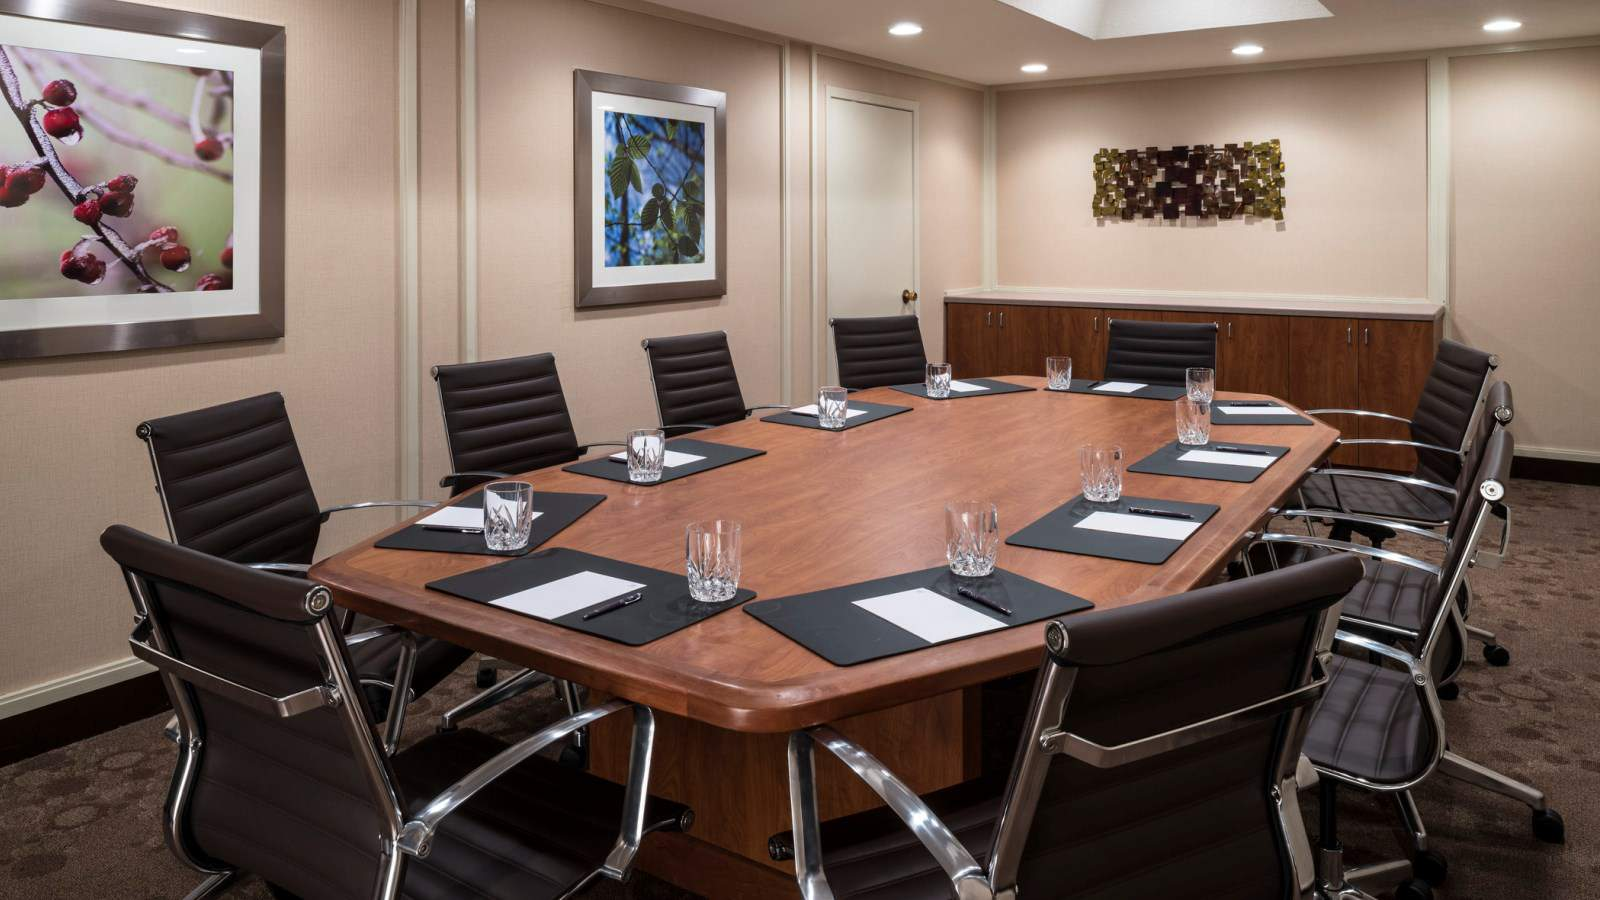 Meeting Rooms in Salt Lake City - Small Meetings